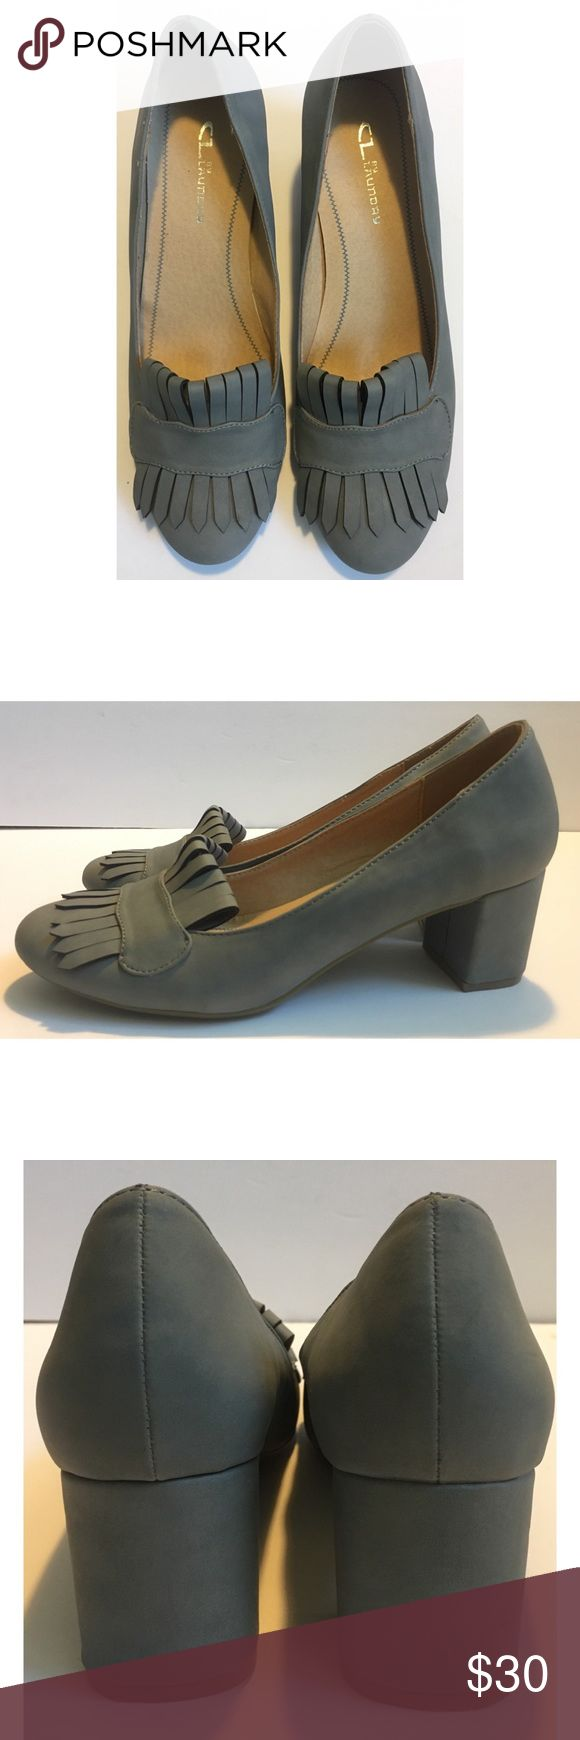 New CL By Laundry Gray Ruby Slipper Heels Size 7.5 New without tags/ Size 7.5 Chinese Laundry Shoes Heels